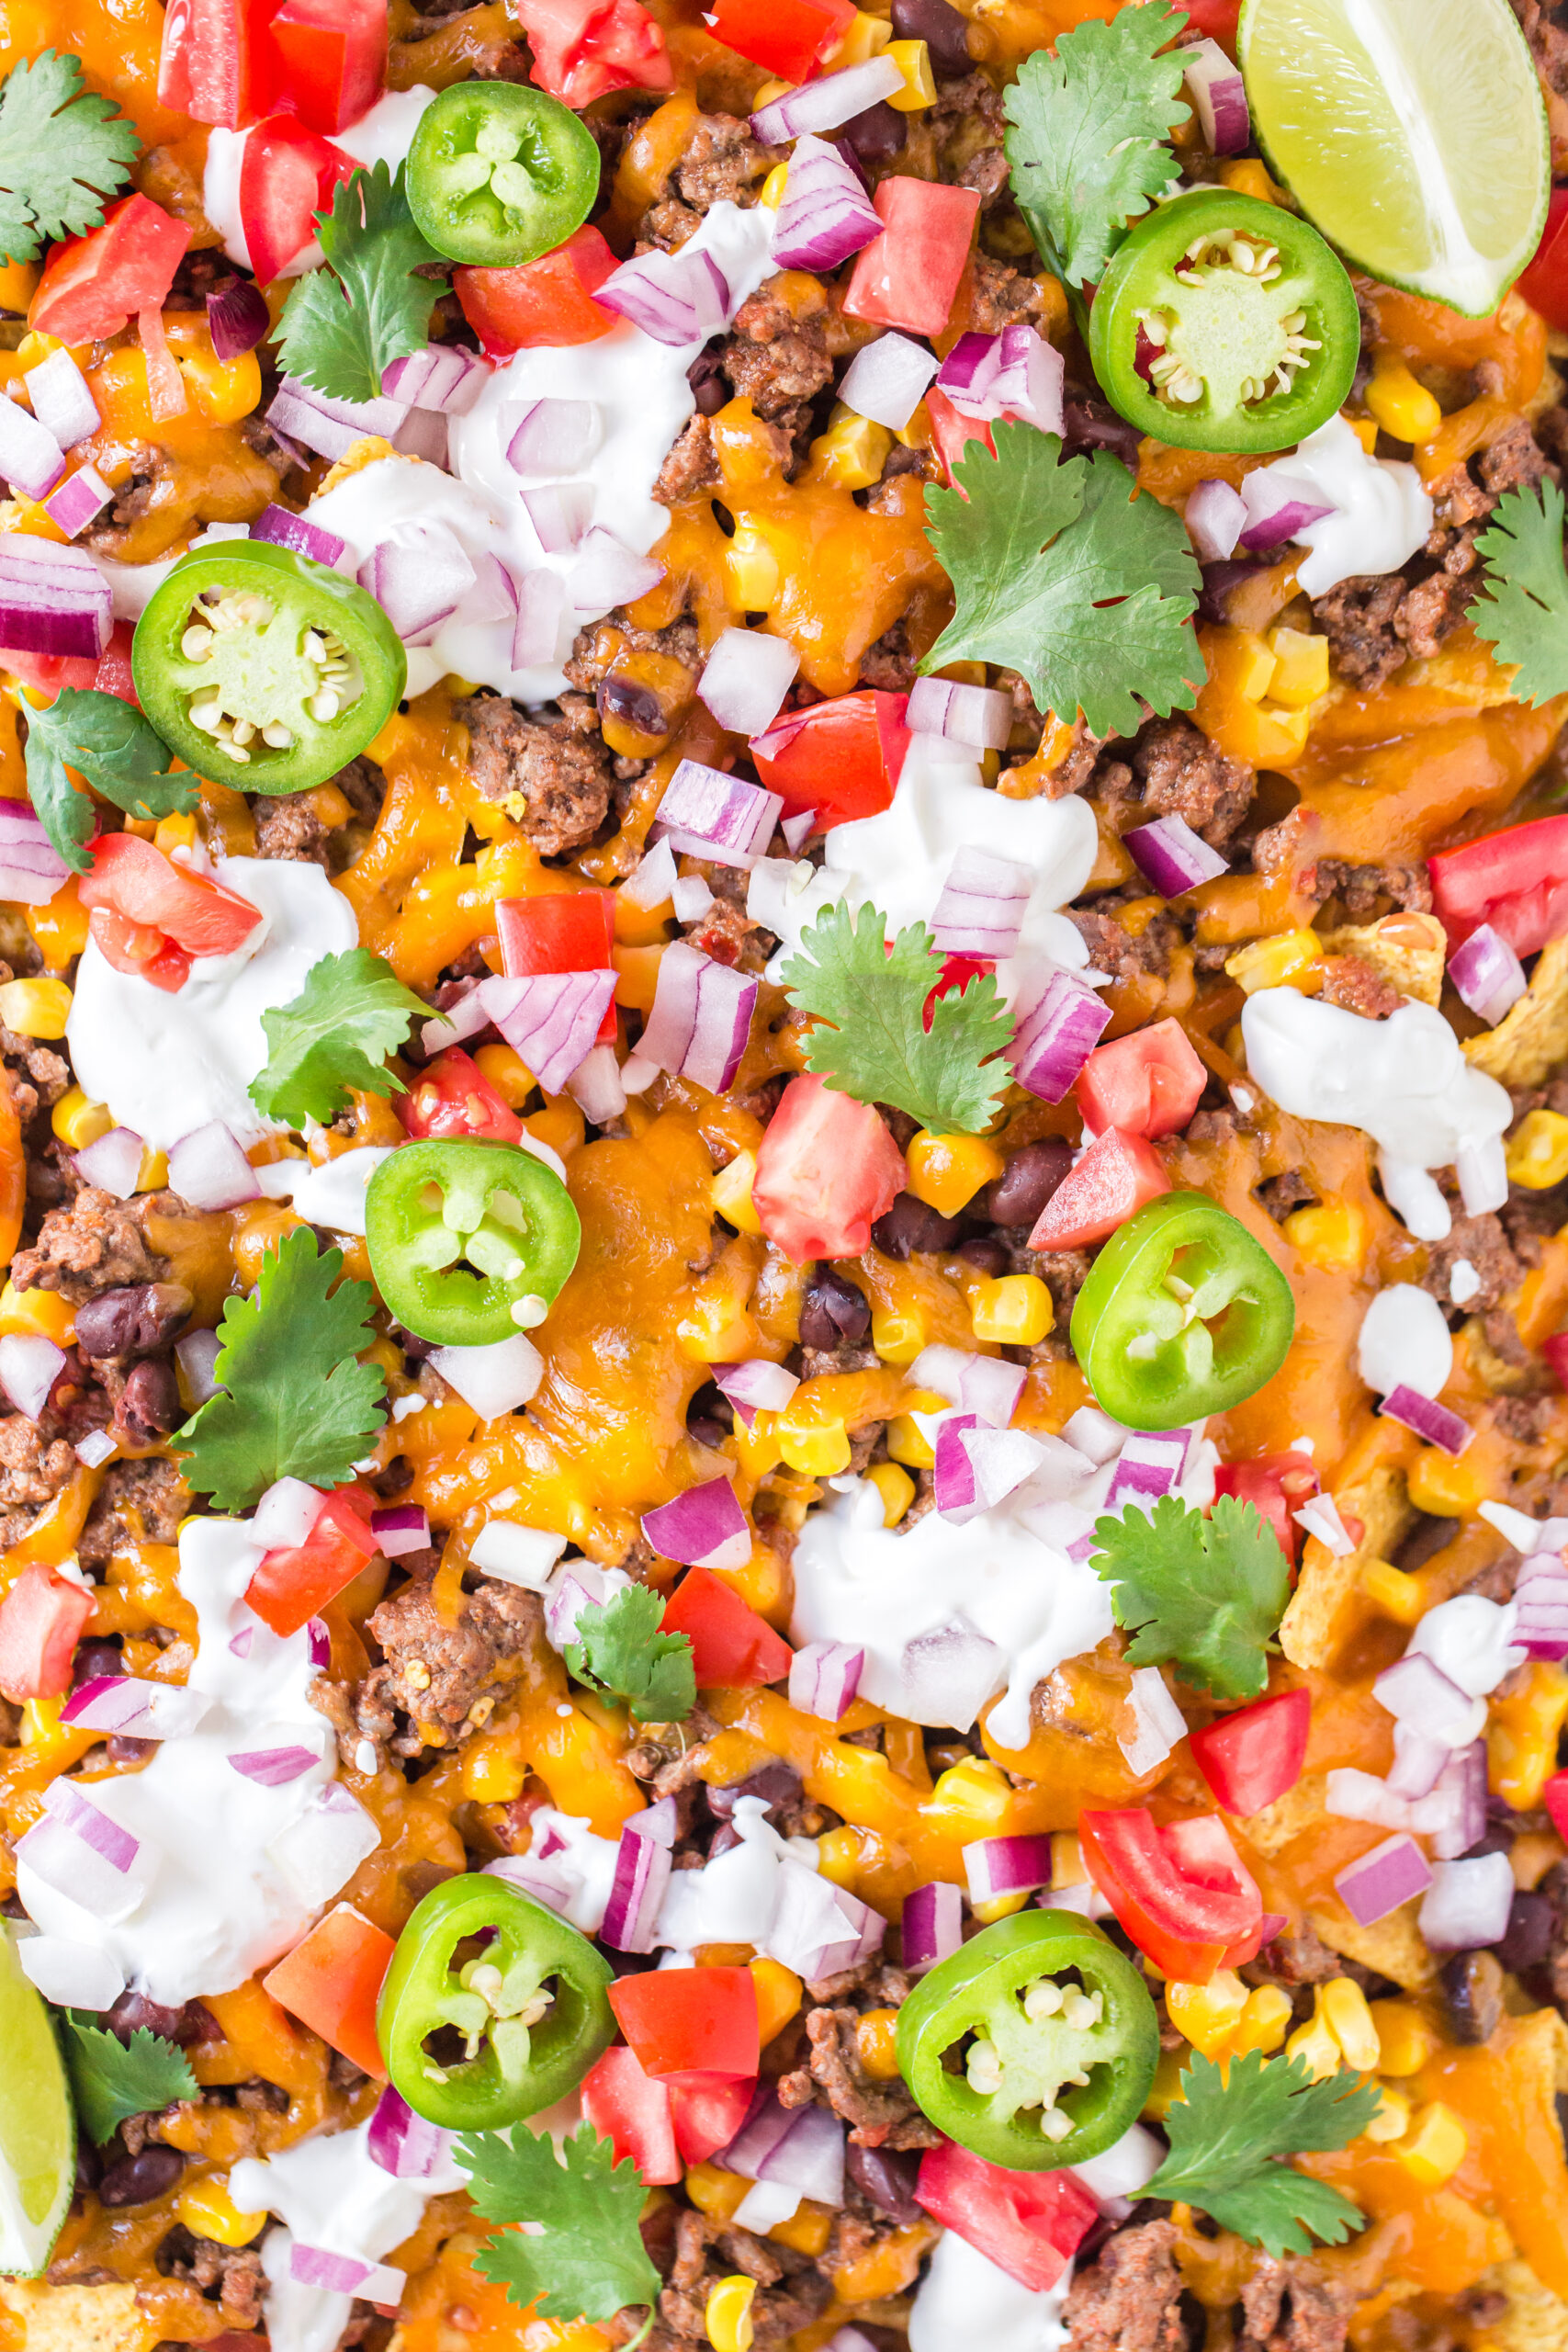 up close view of a sheet pan filled with nachos and generous toppings